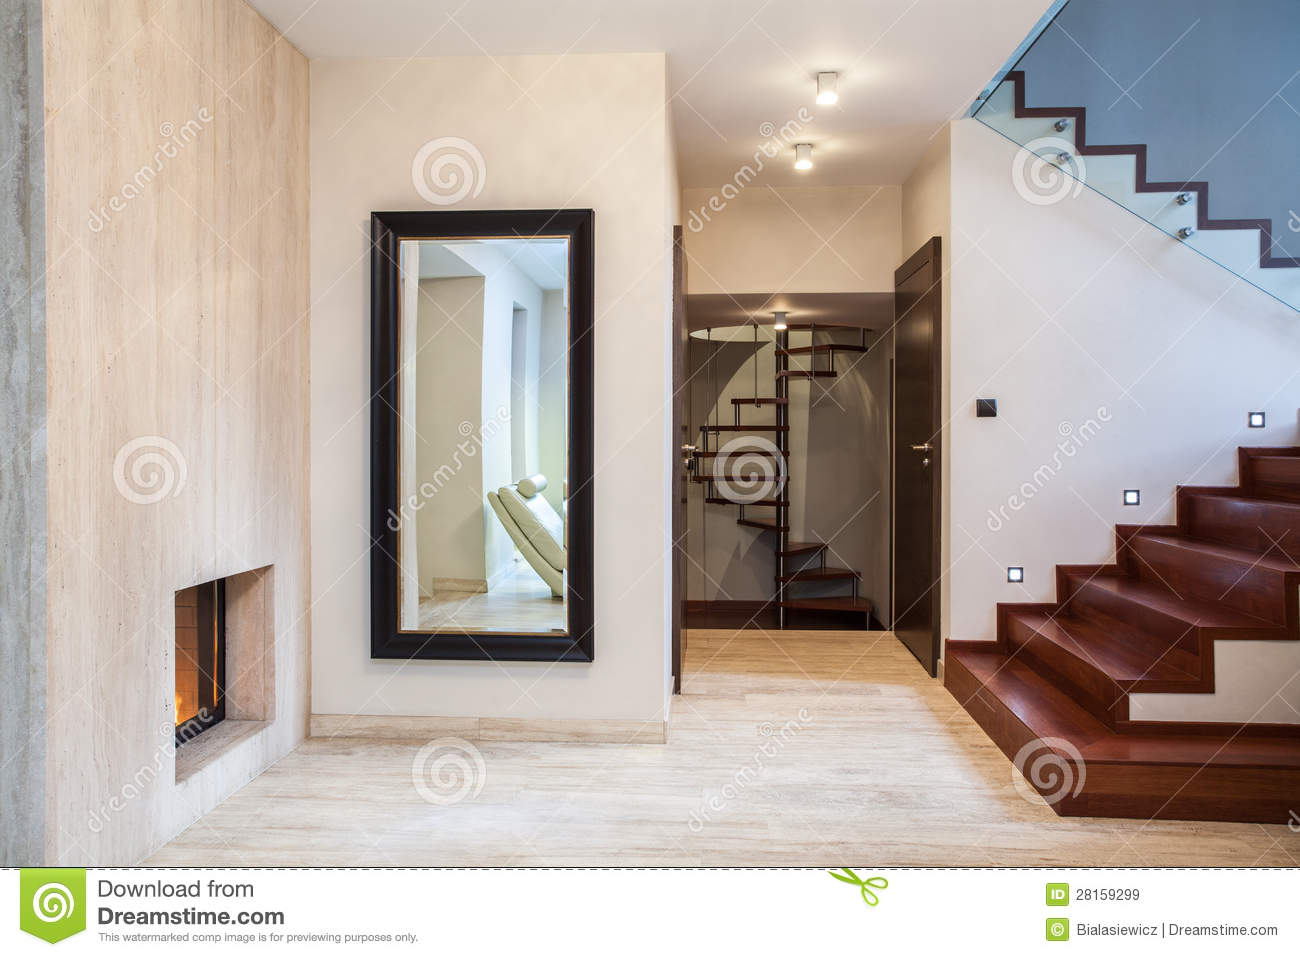 Huge Mirror Travertine House Mirror And Stairs Stock Image Image Of Real